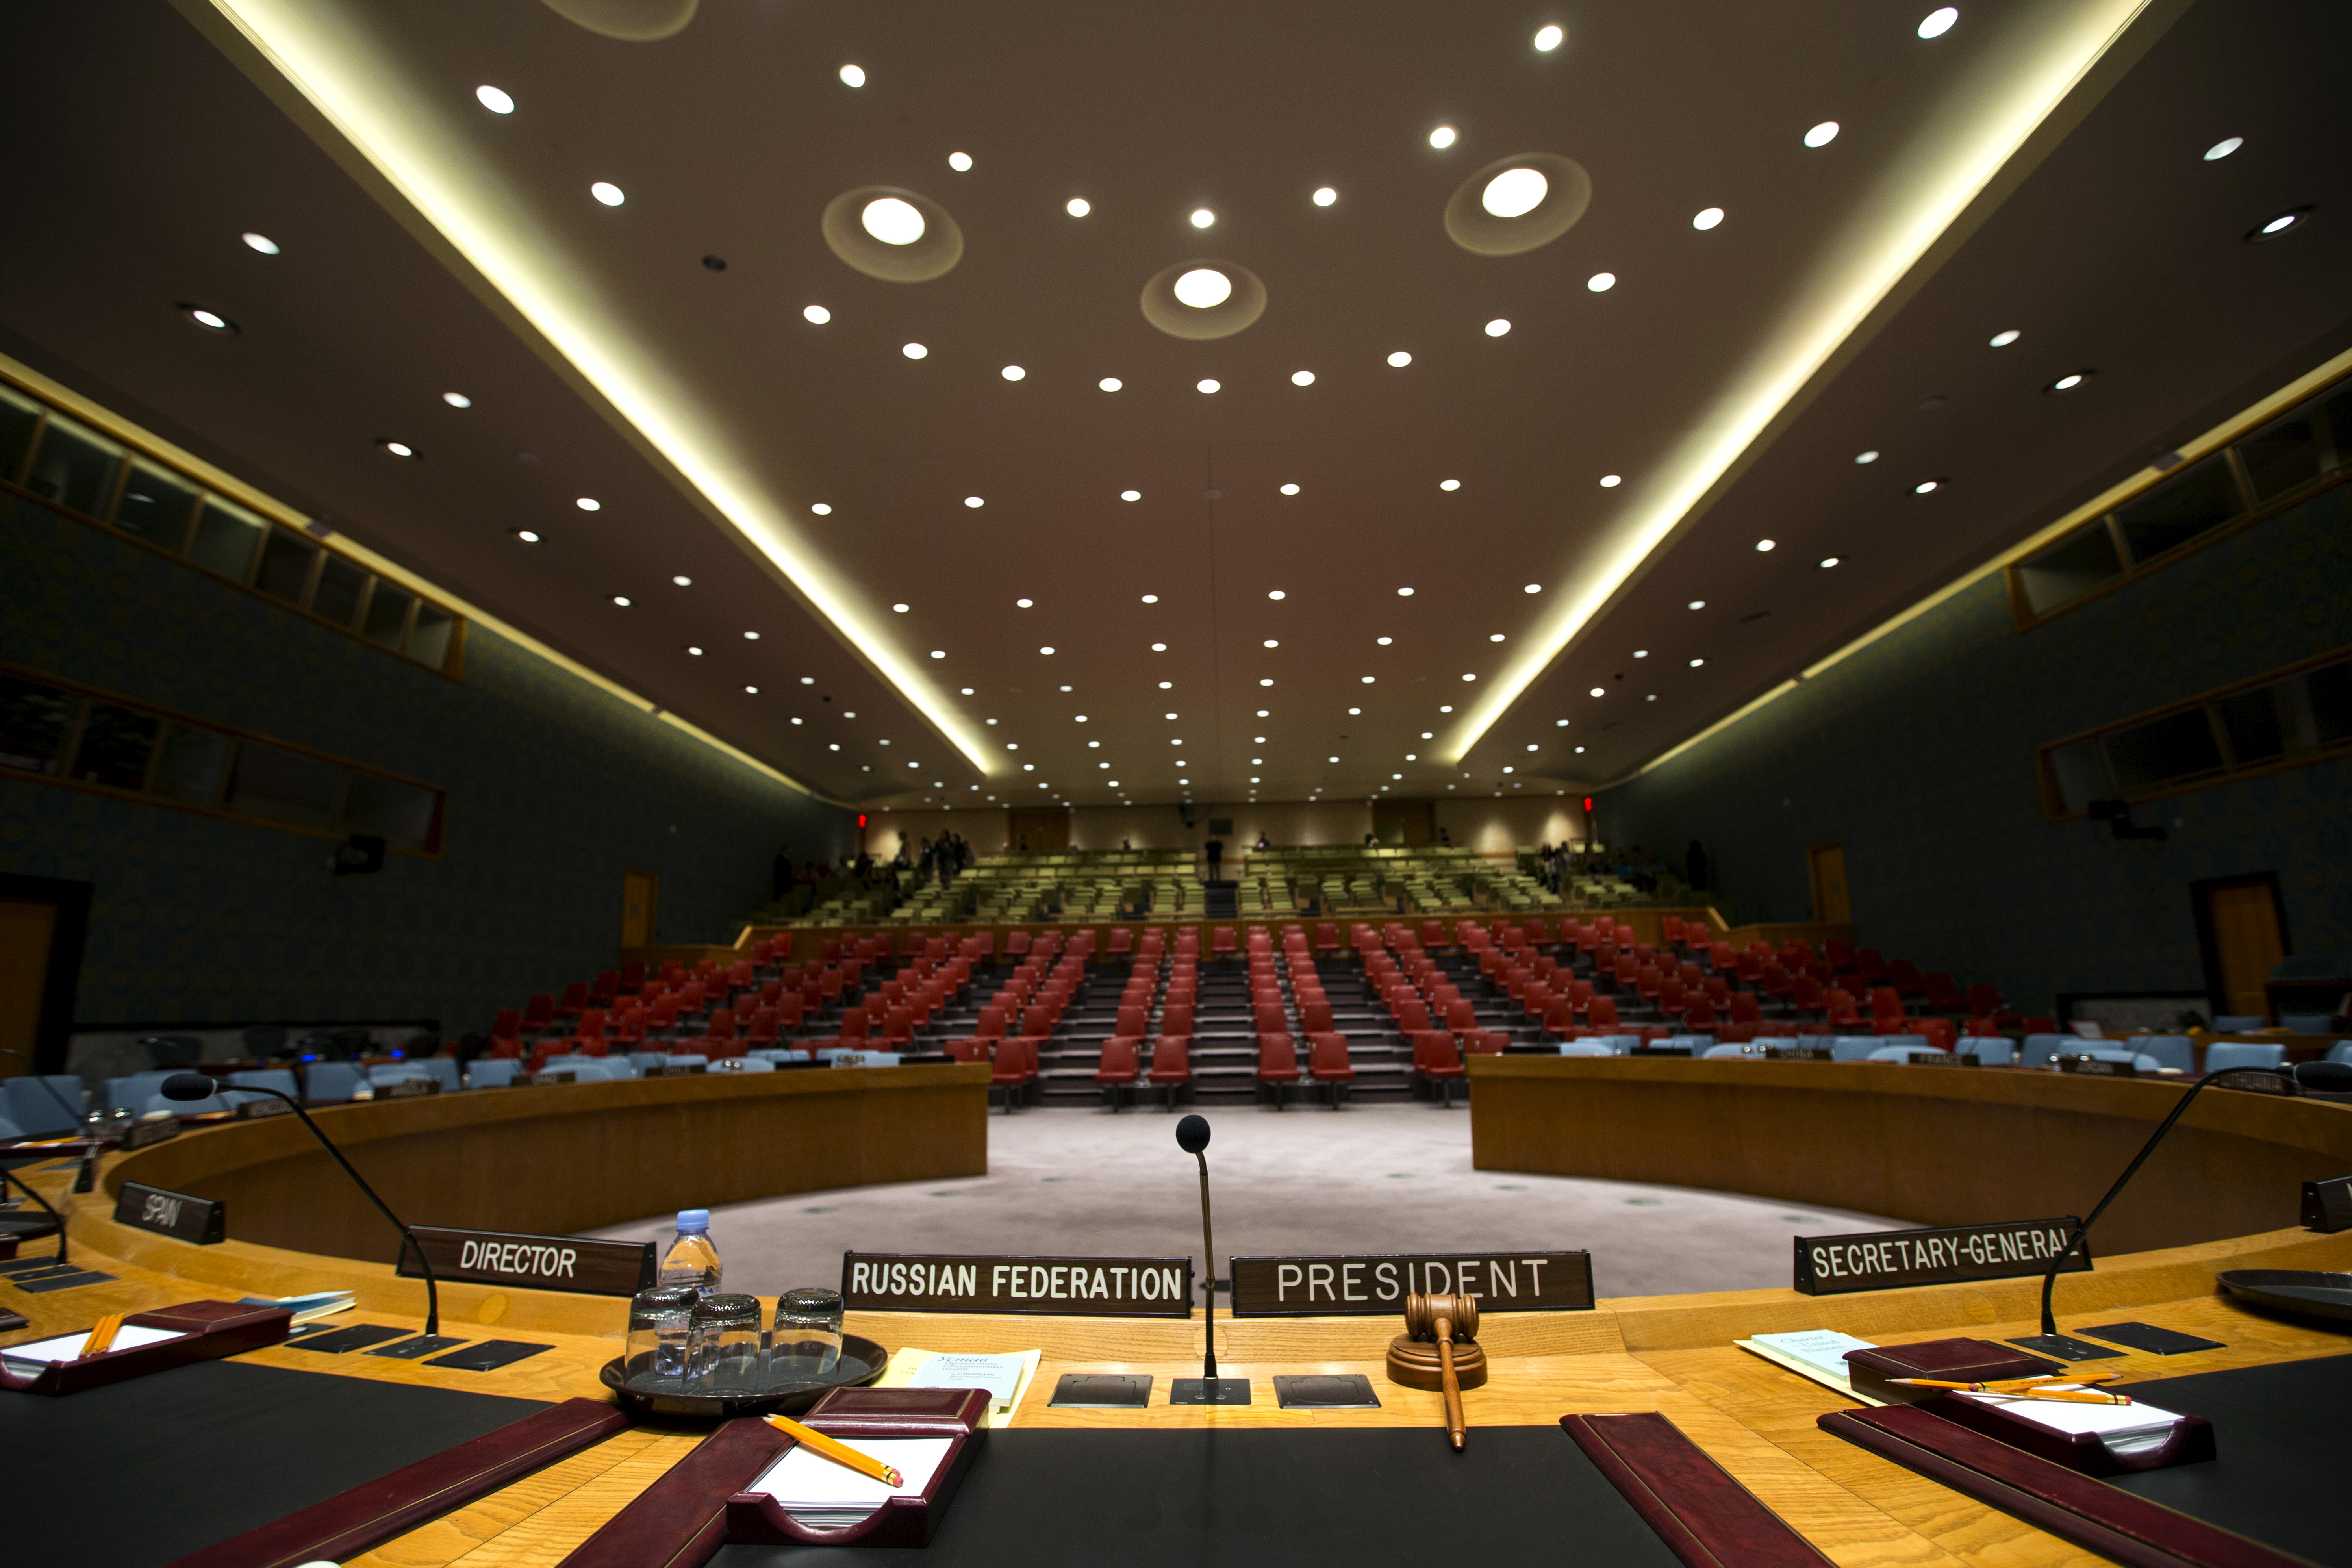 The Security Council chamber is seen from behind the council president's chair at the United Nations headquarters in New York City, September 18, 2015 REUTERS/Mike Segar/File Photo